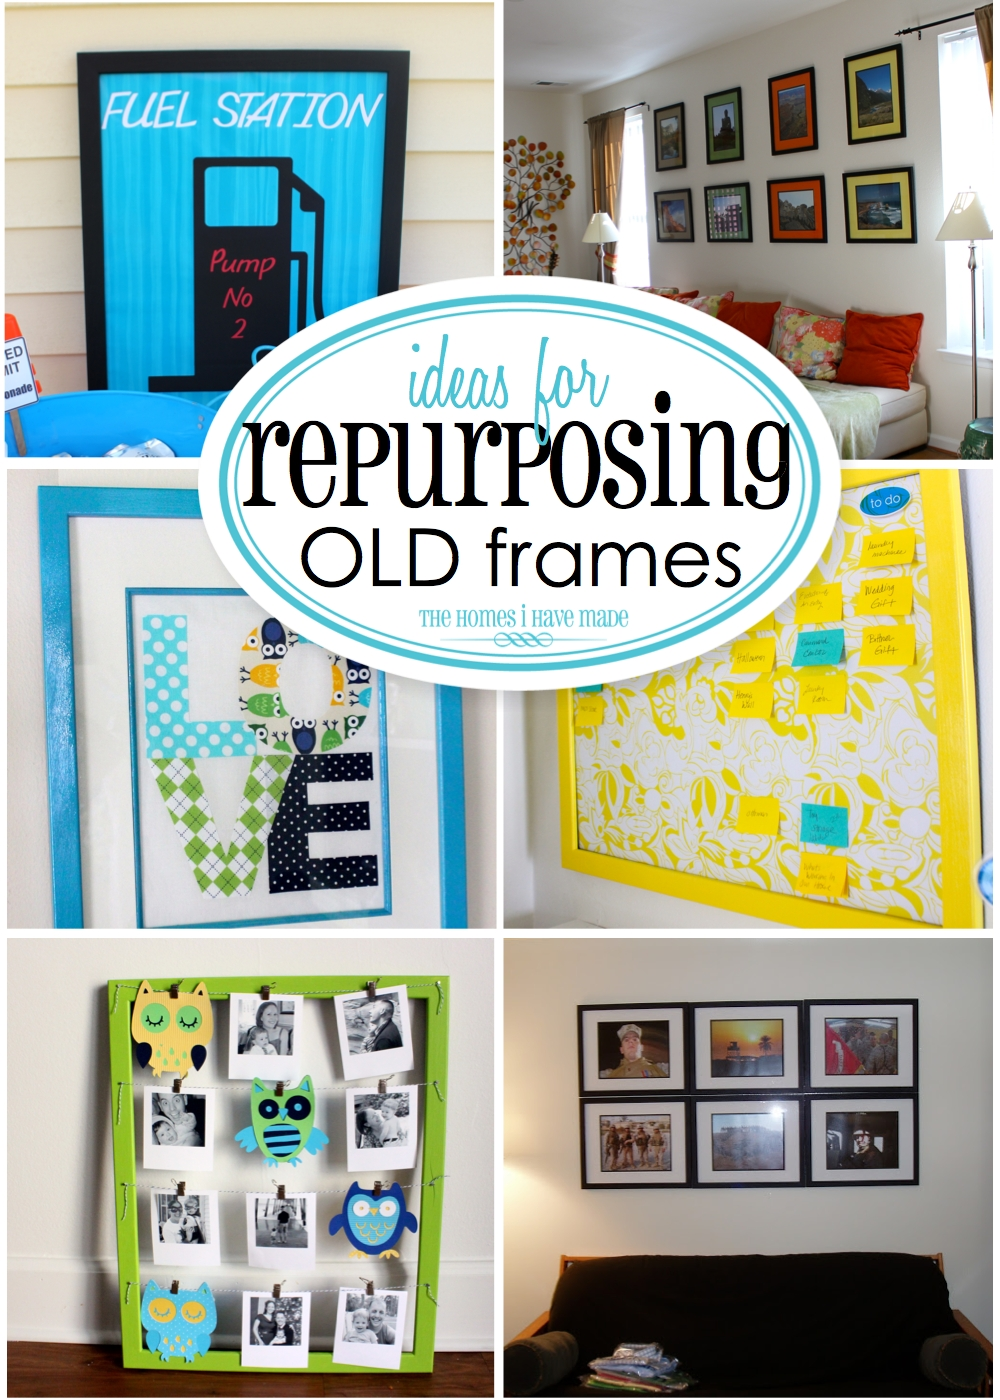 Ideas for Repurposing Old Frames | The Homes I Have Made